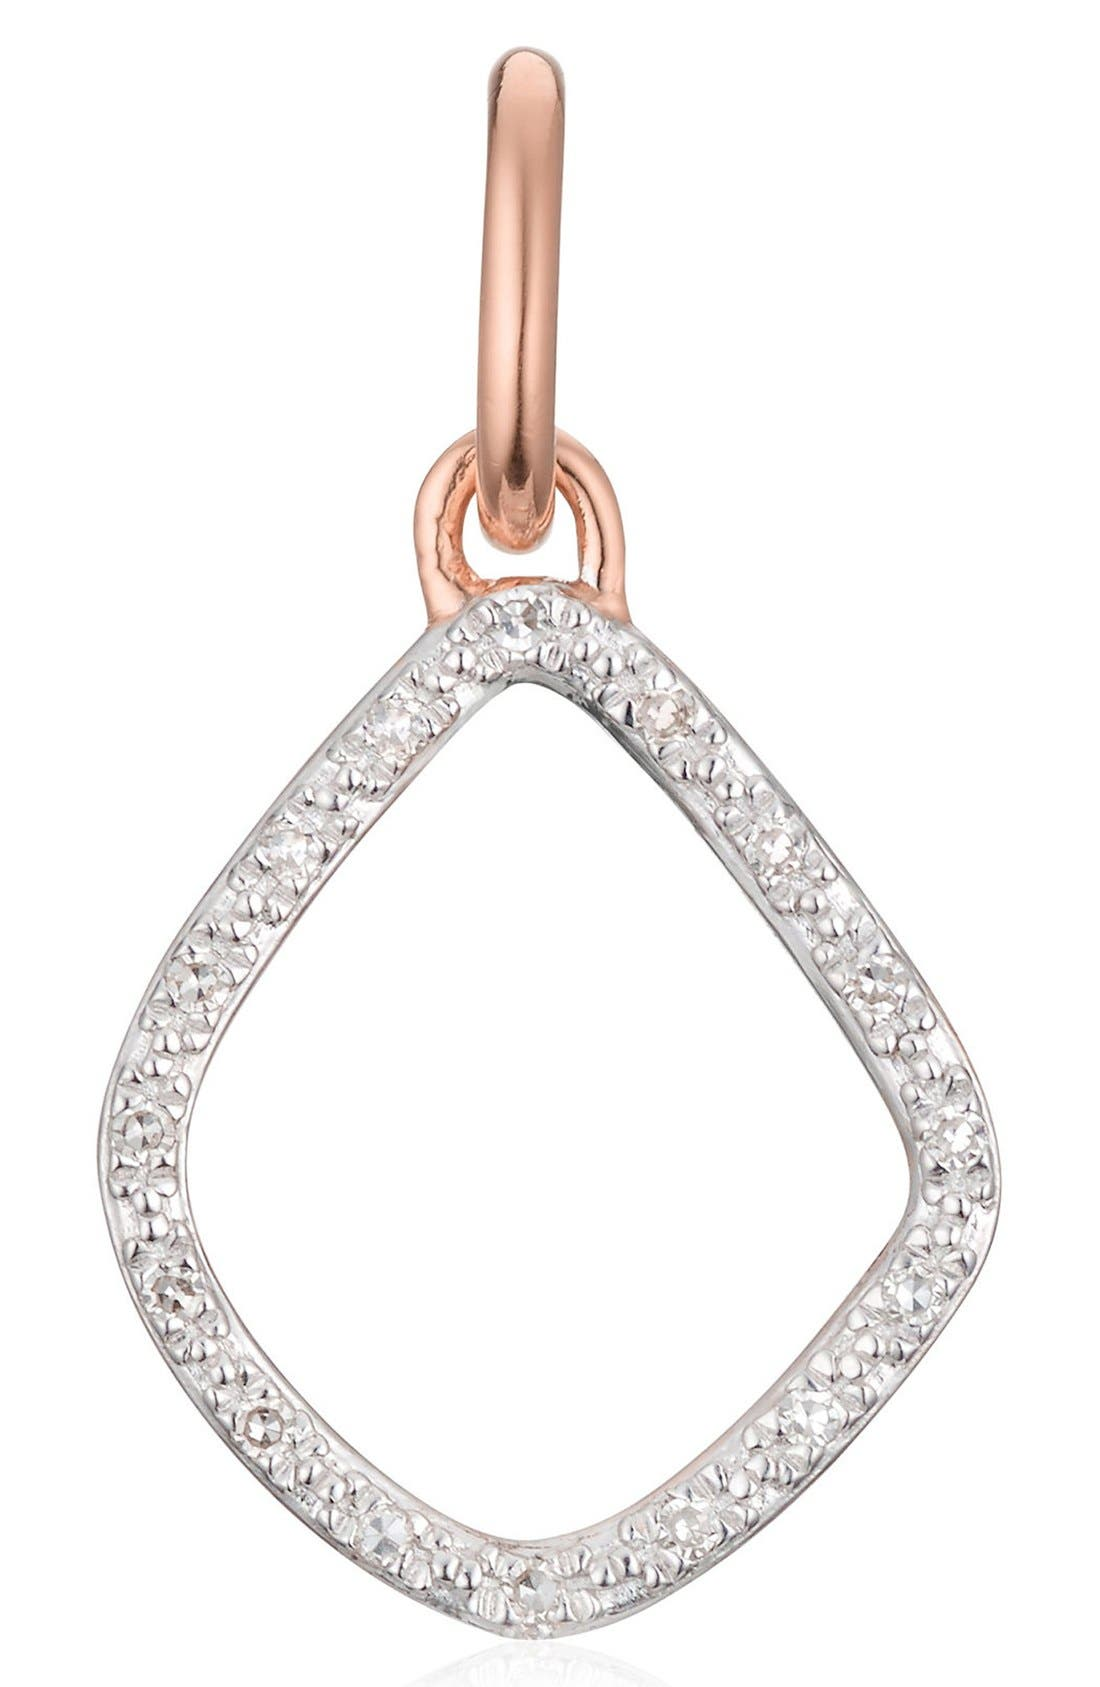 MONICA VINADER Riva Diamond Kite Pendant